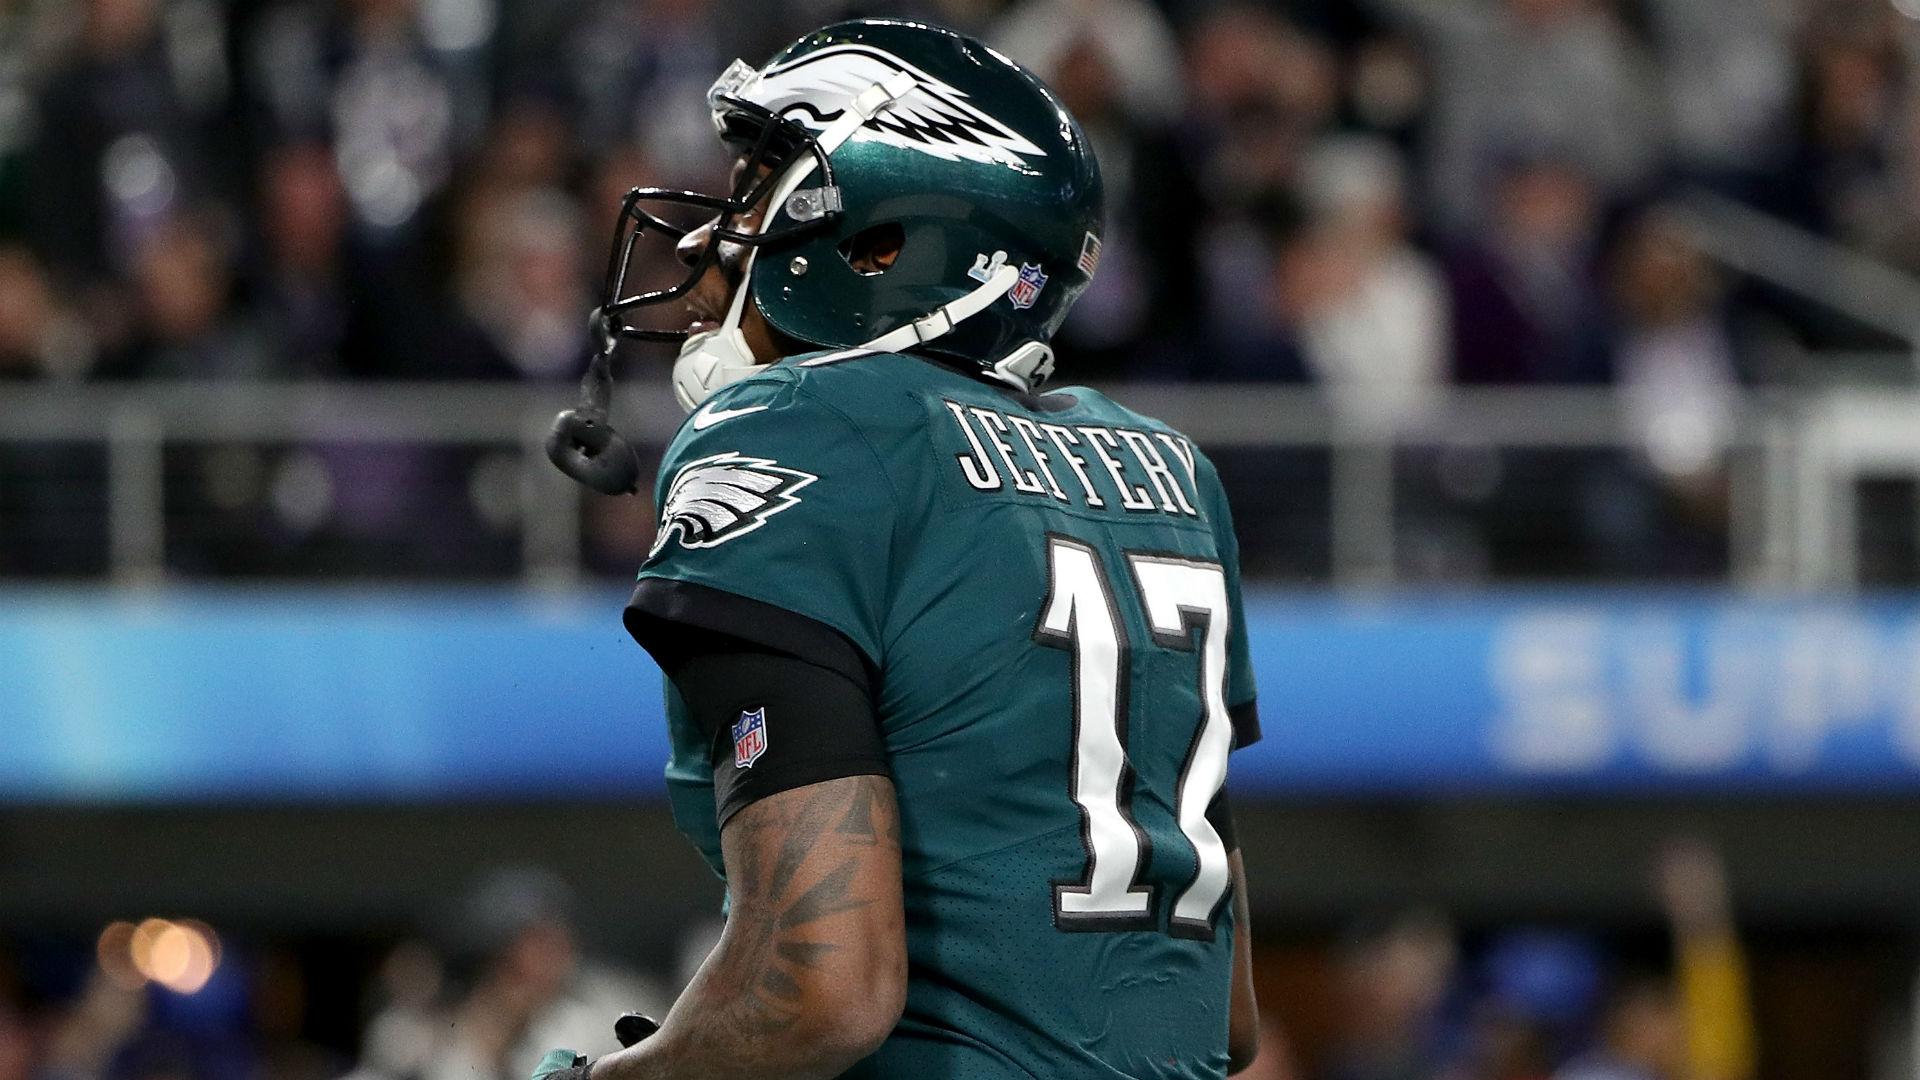 Eagles WR Alshon Jeffery reportedly undergoes successful shoulder surgery